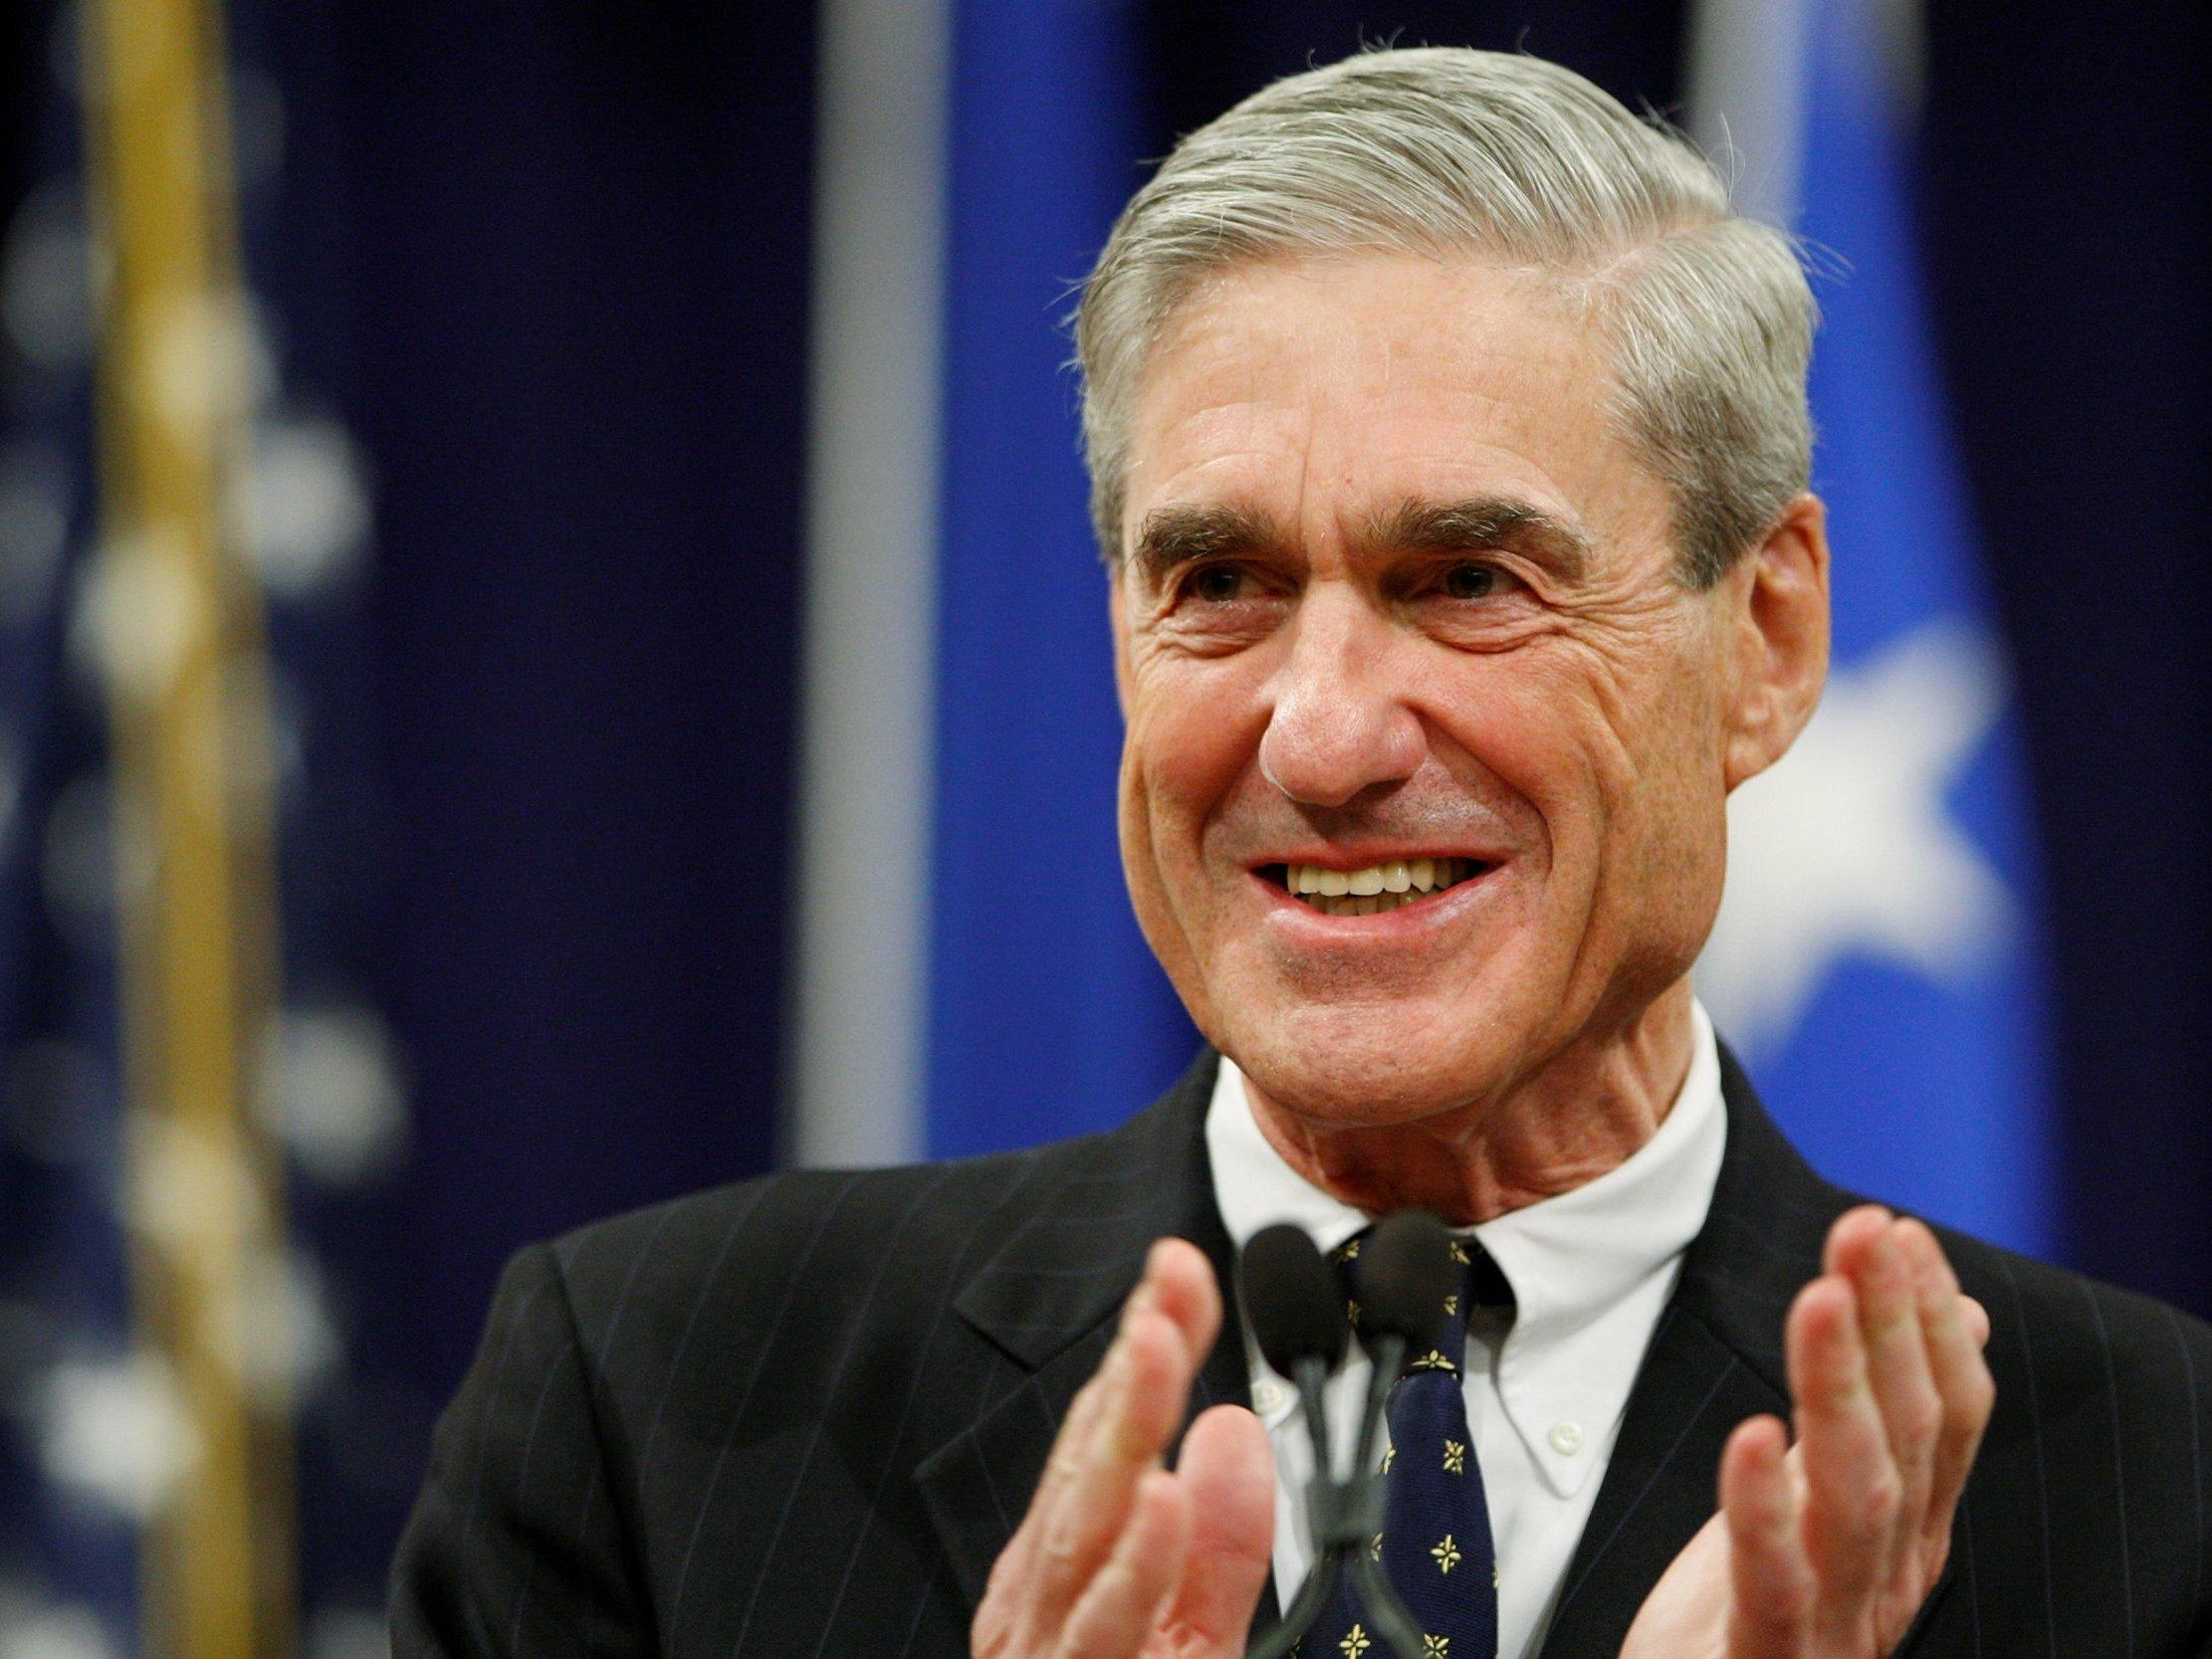 Robert Mueller's Russia investigation may have concluded but Trump cannot breathe a sigh of relief just yet